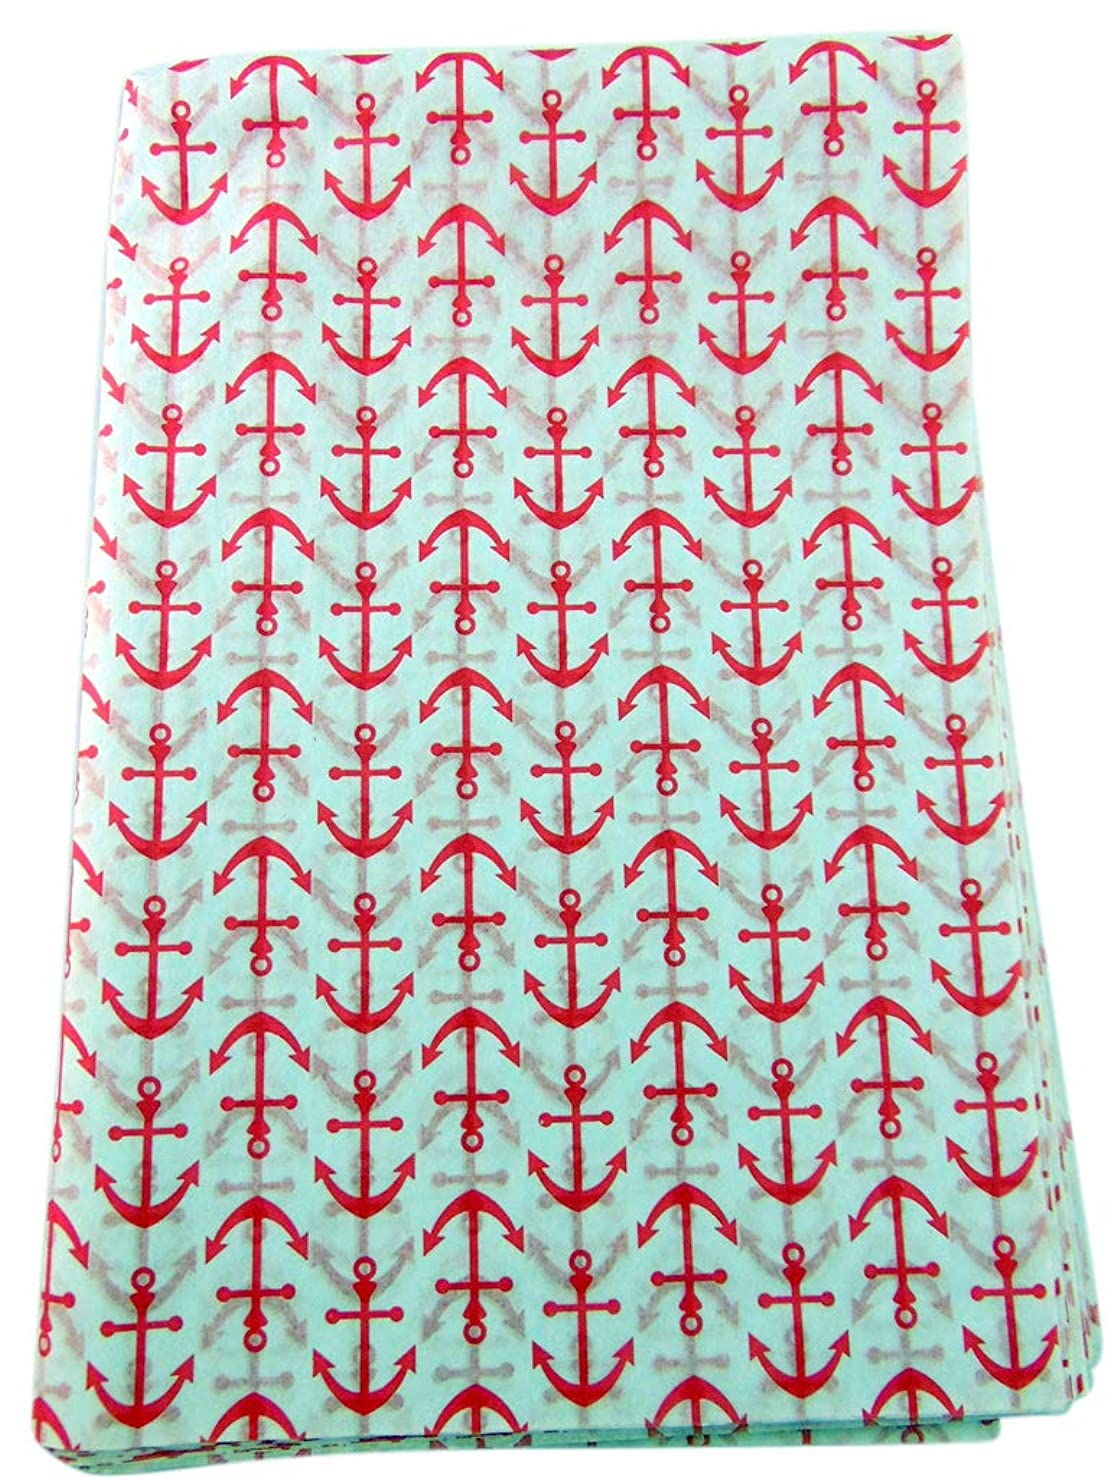 Anchor Tissue Paper for Gift Bags Hot Pink Nautical Anchors 20 inch x 30 inch, Pack of 20